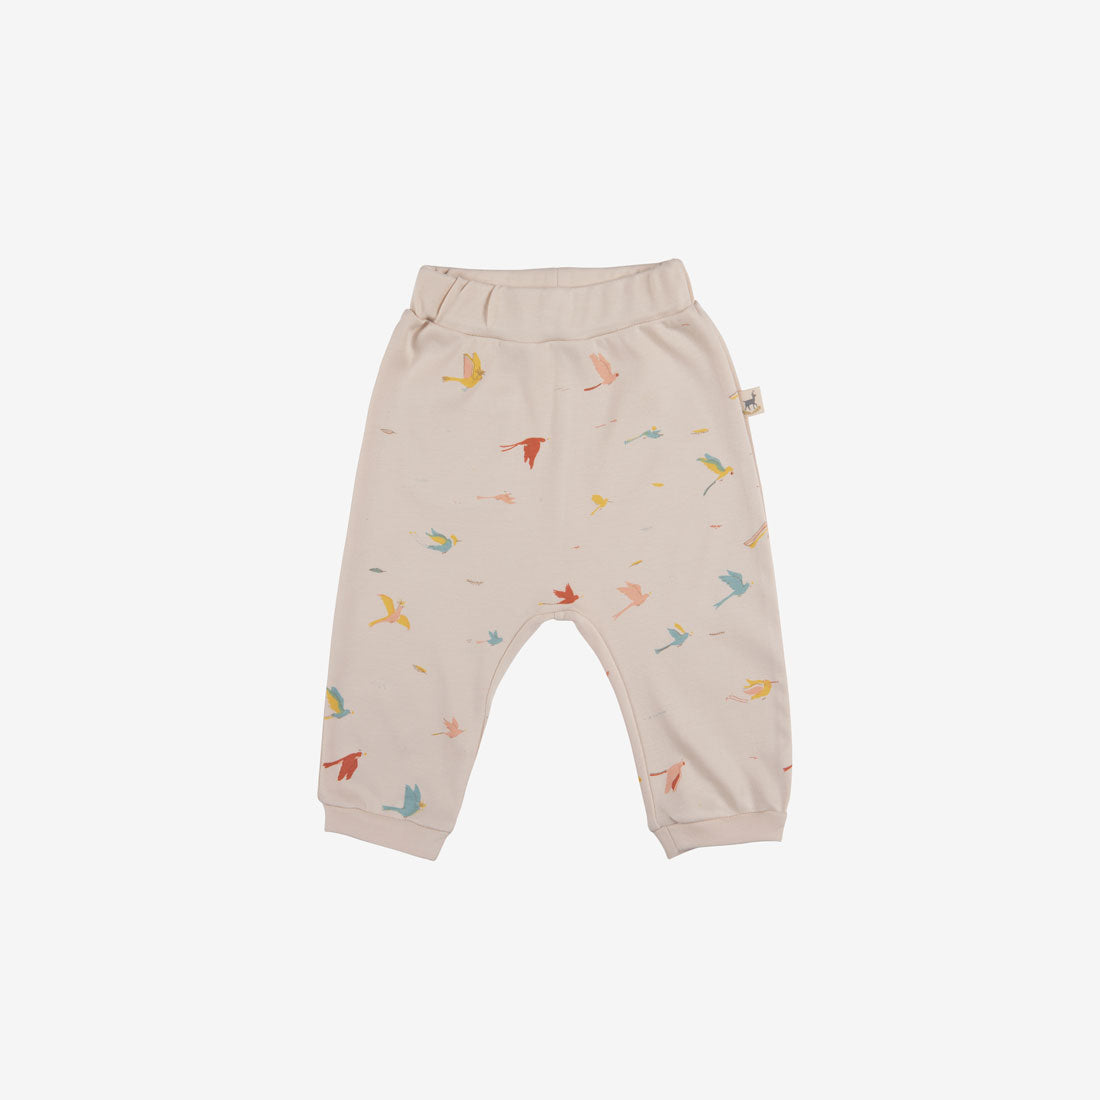 Tropical Birds Organic Pima Baggy Baby Pants - Pink Tint